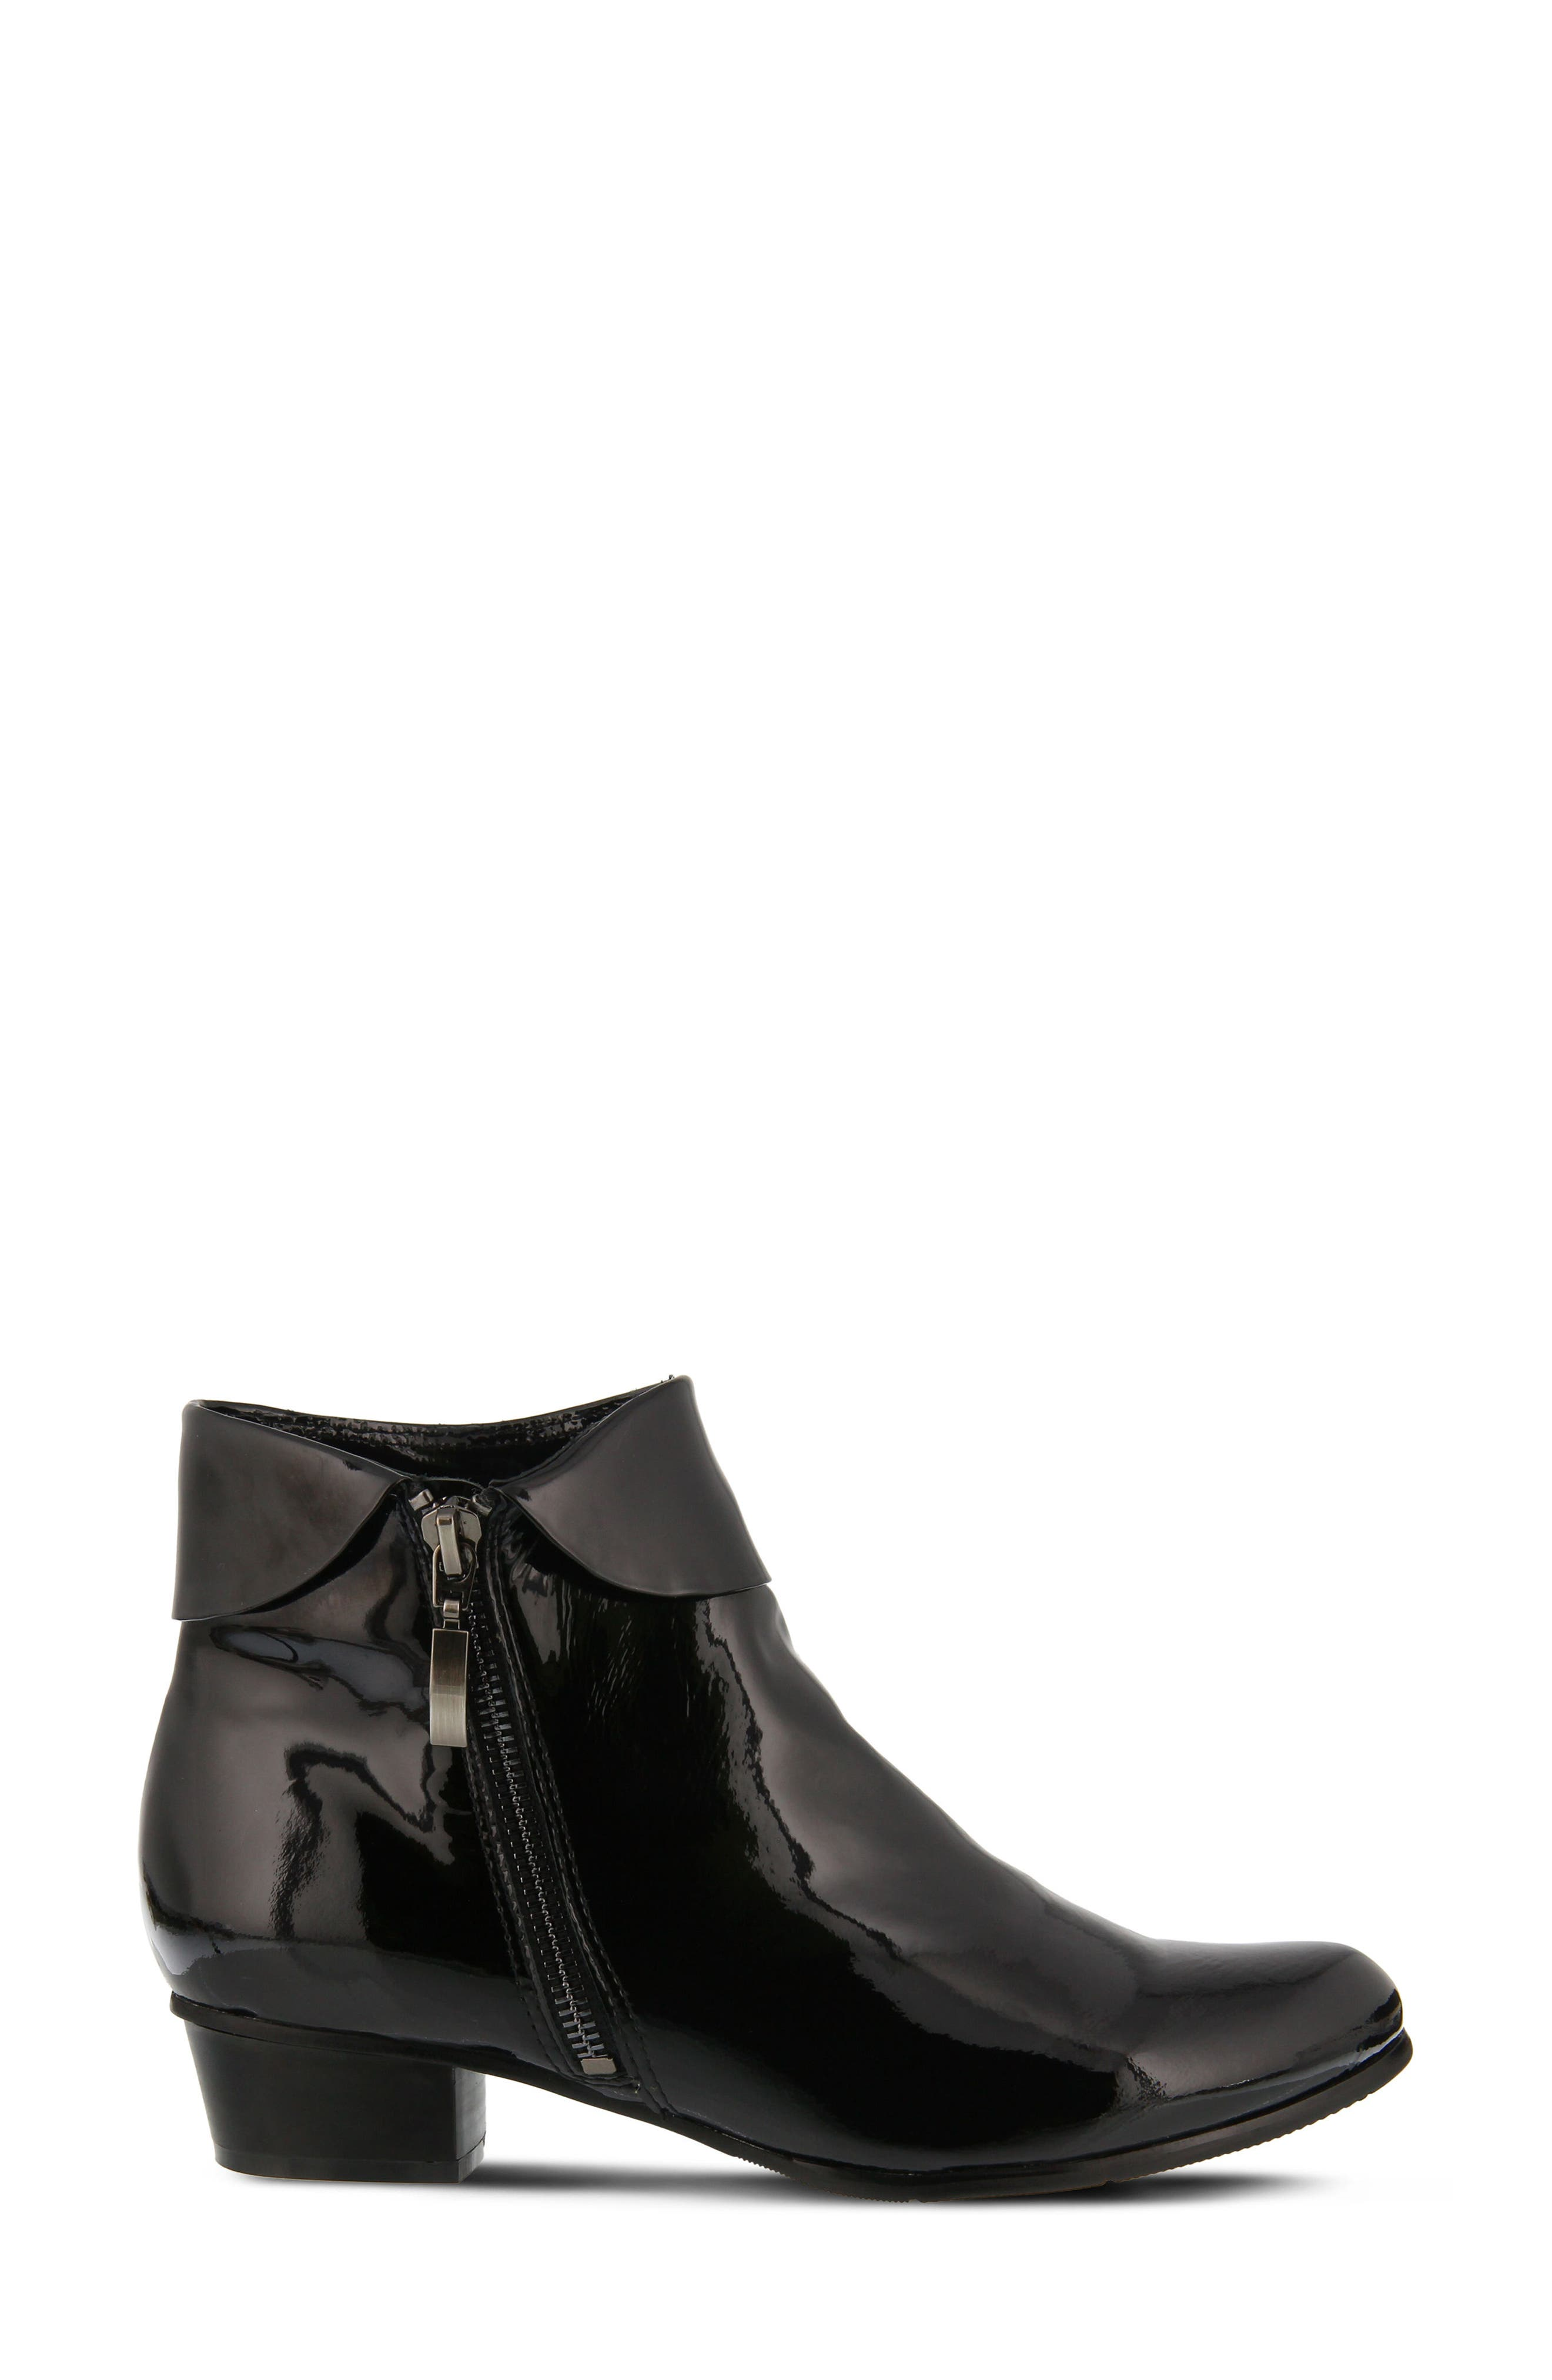 'Stockholm' Boot,                             Alternate thumbnail 3, color,                             Black Patent Leather